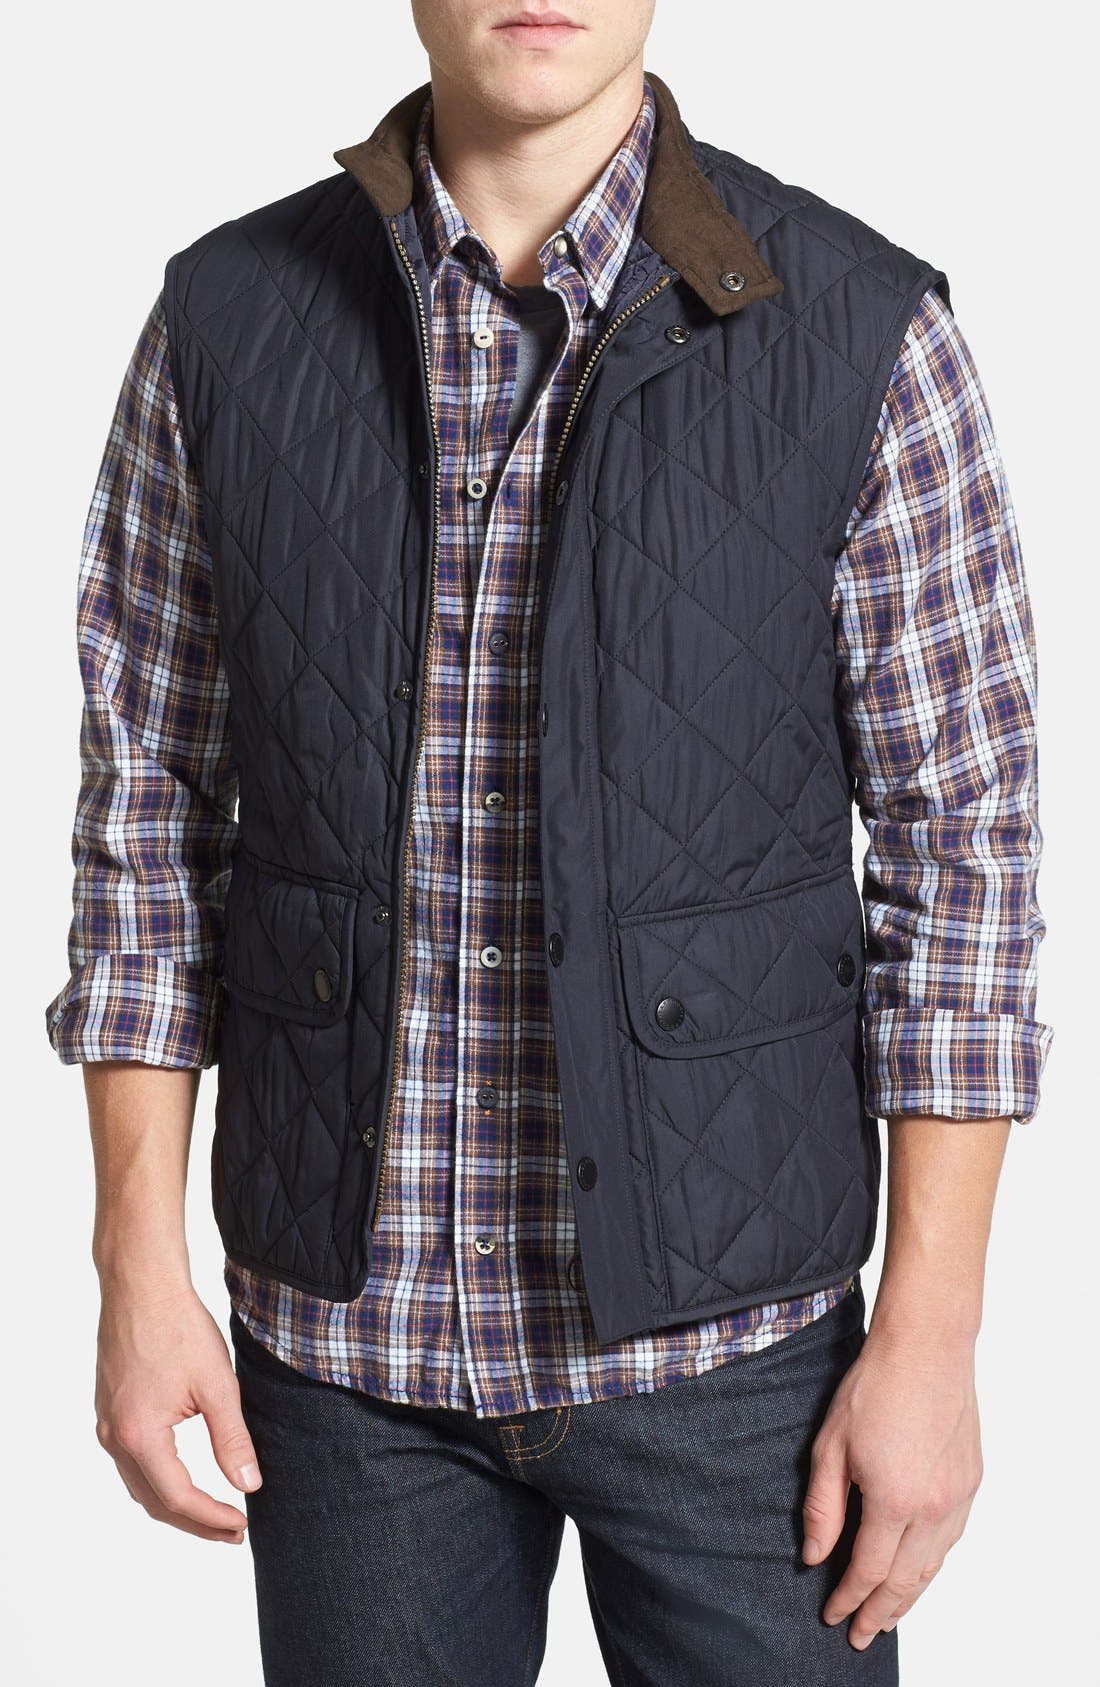 Barbour 'Lowerdale' Trim Fit Quilted Vest